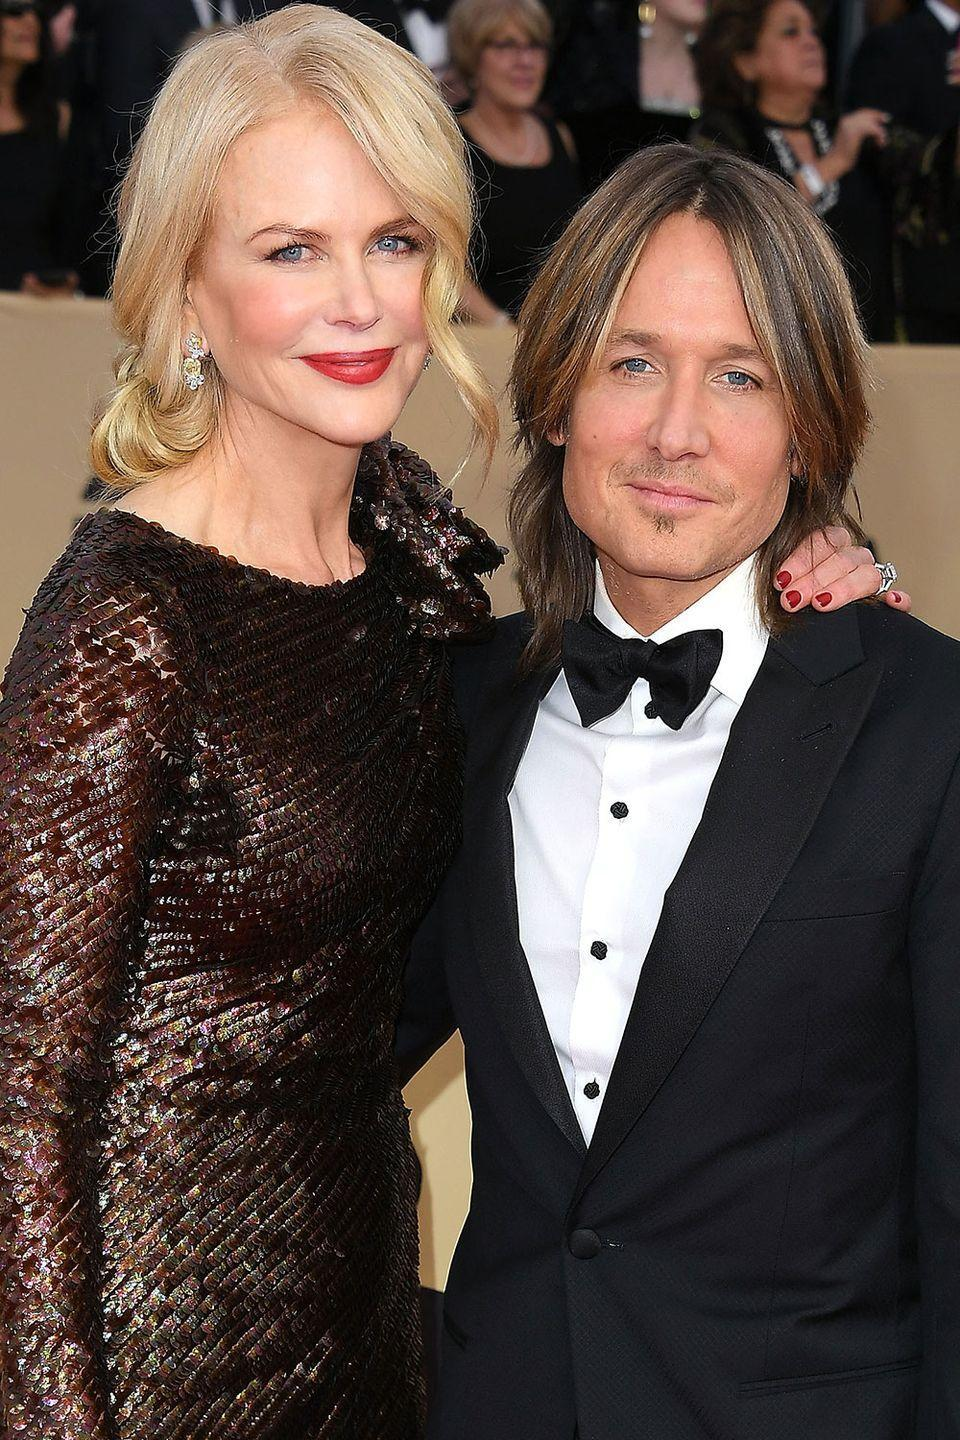 <p>They're both native Aussies and they both have those piercing blue eyes. It's no wonder they command red carpets in Hollywood and Nashville.</p>